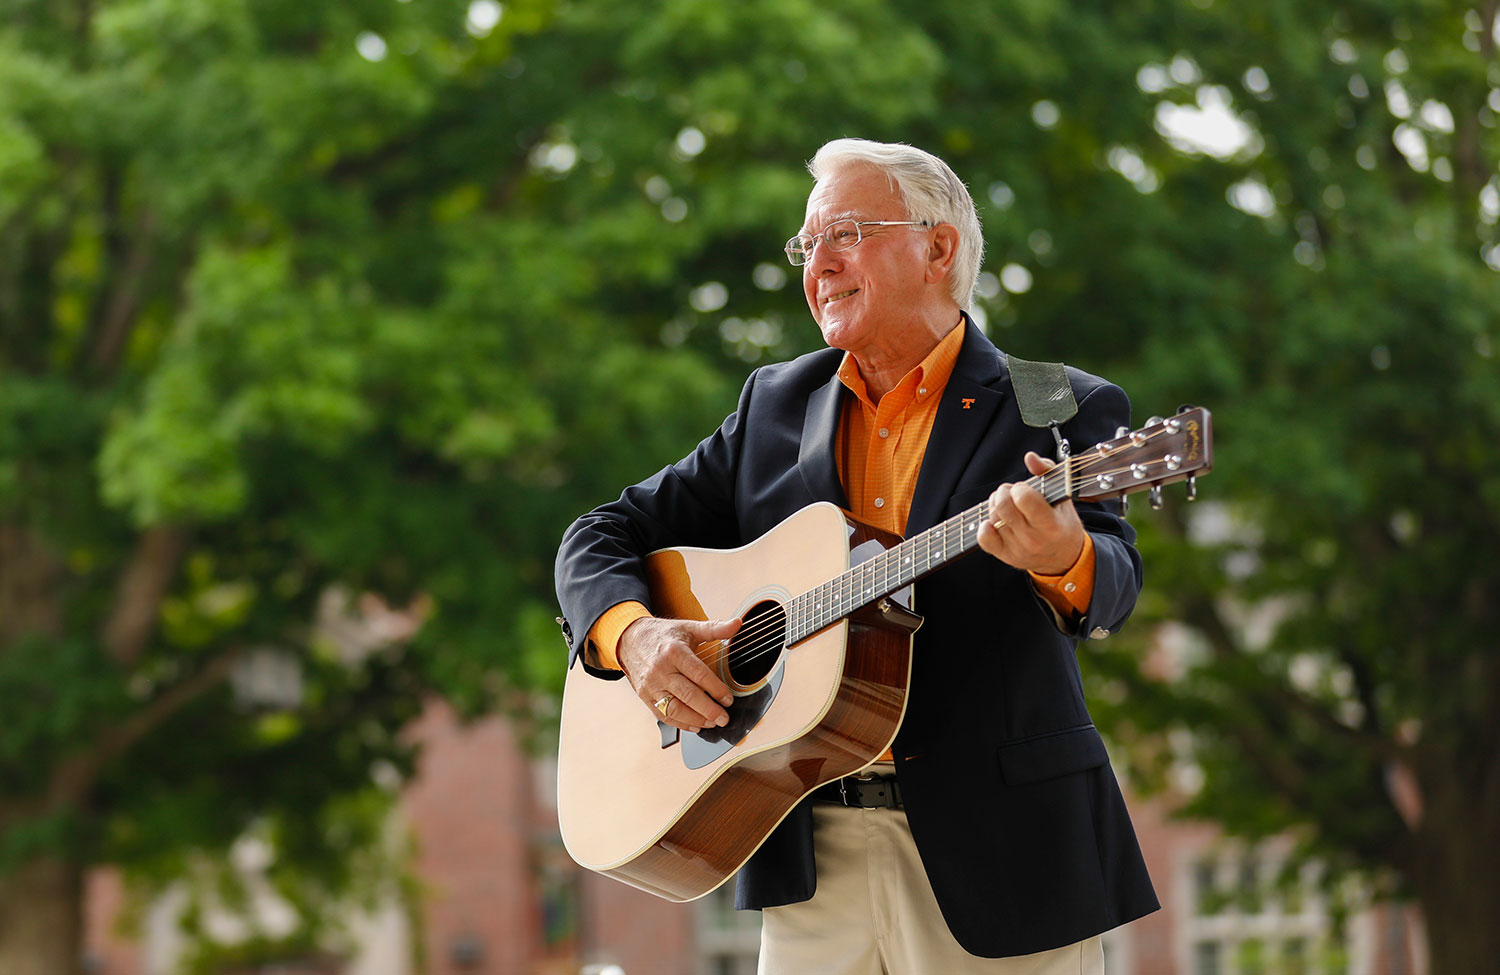 Chancellor Davis looks forward to playing his guitar more often.